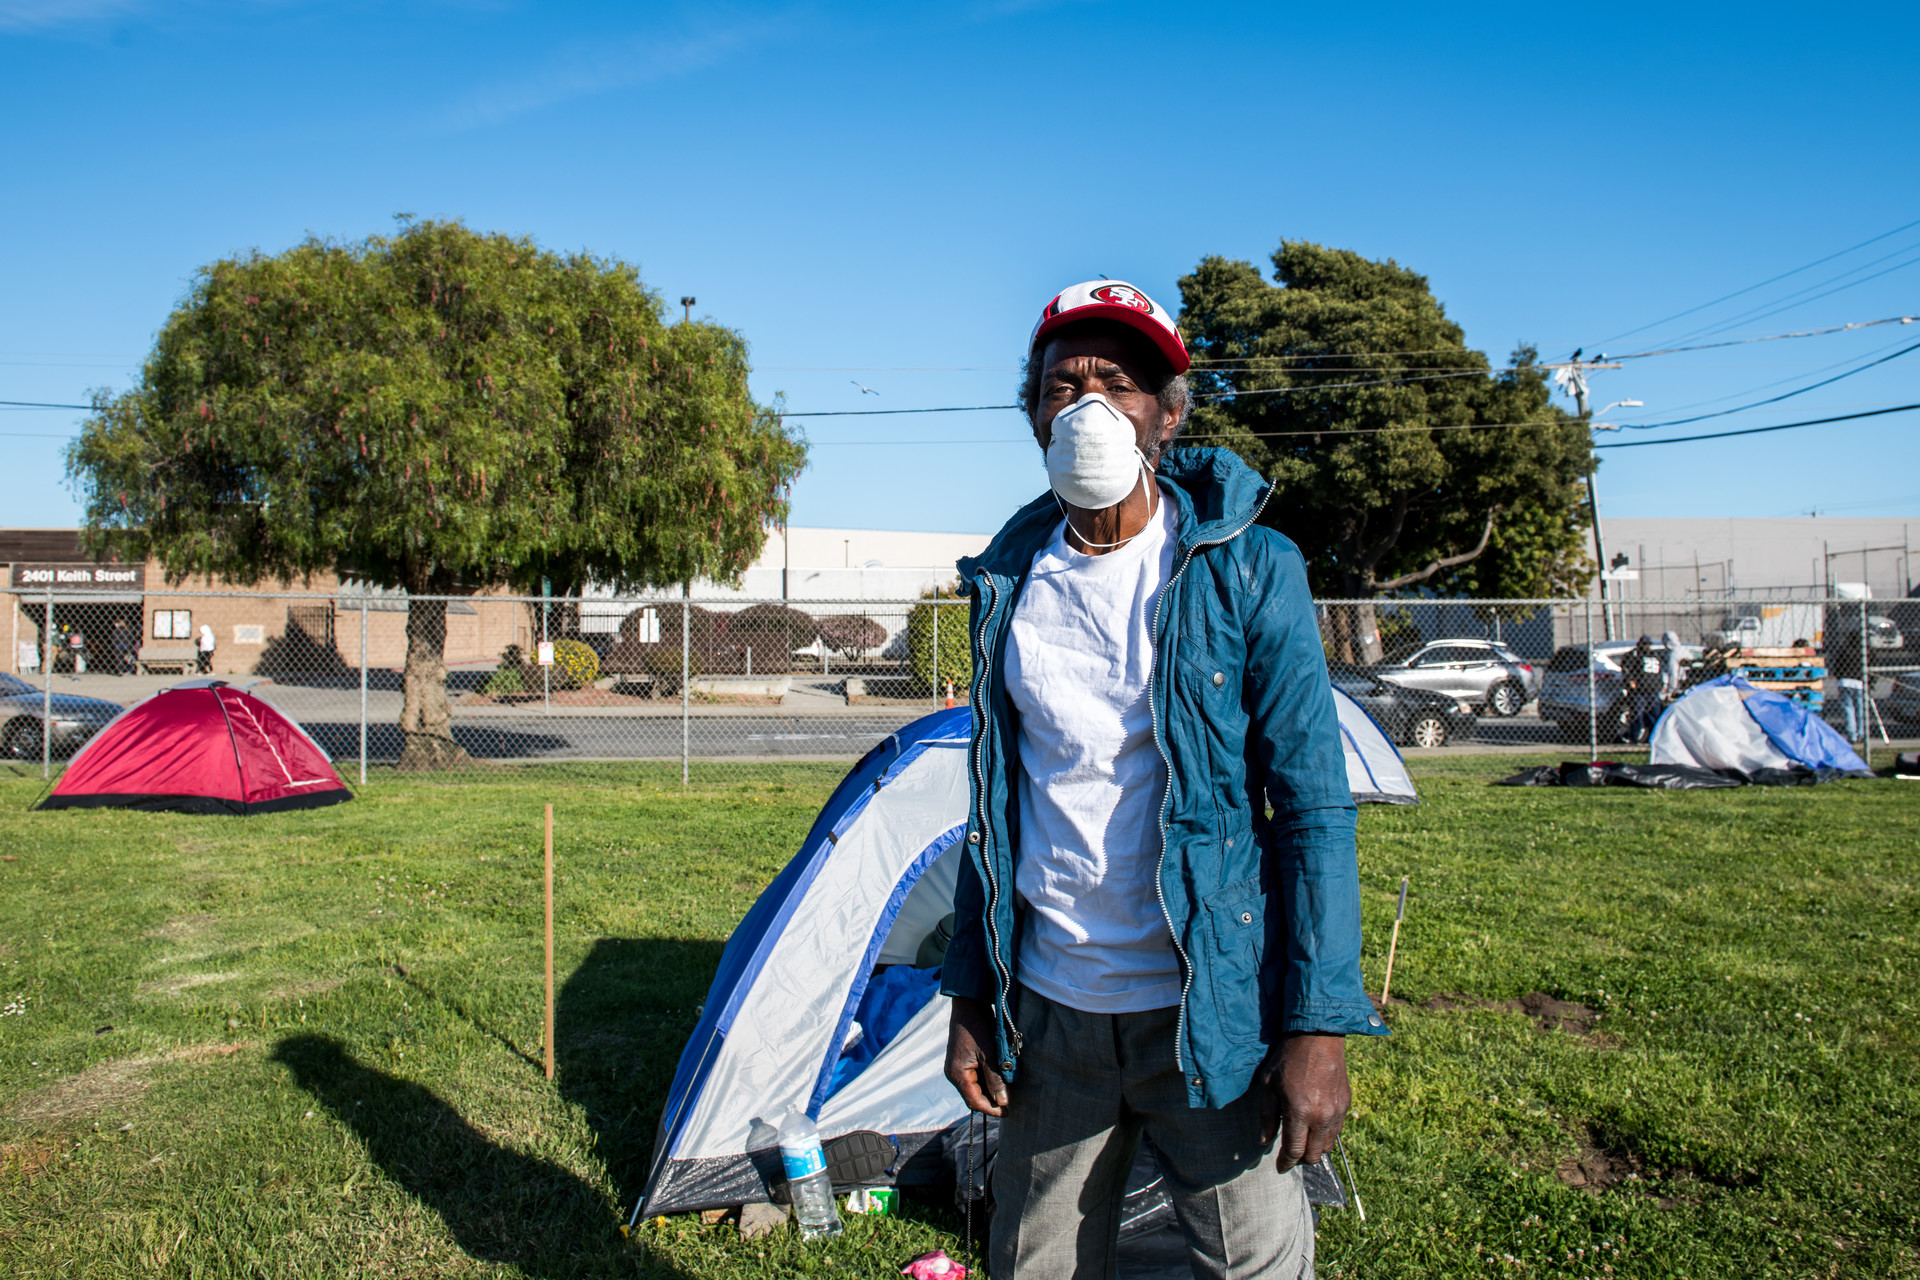 Eddie Tillman stands outside his tent at Bay View Park K.C. Jones Playground - also known as MLK Park - on May 5, 2020.